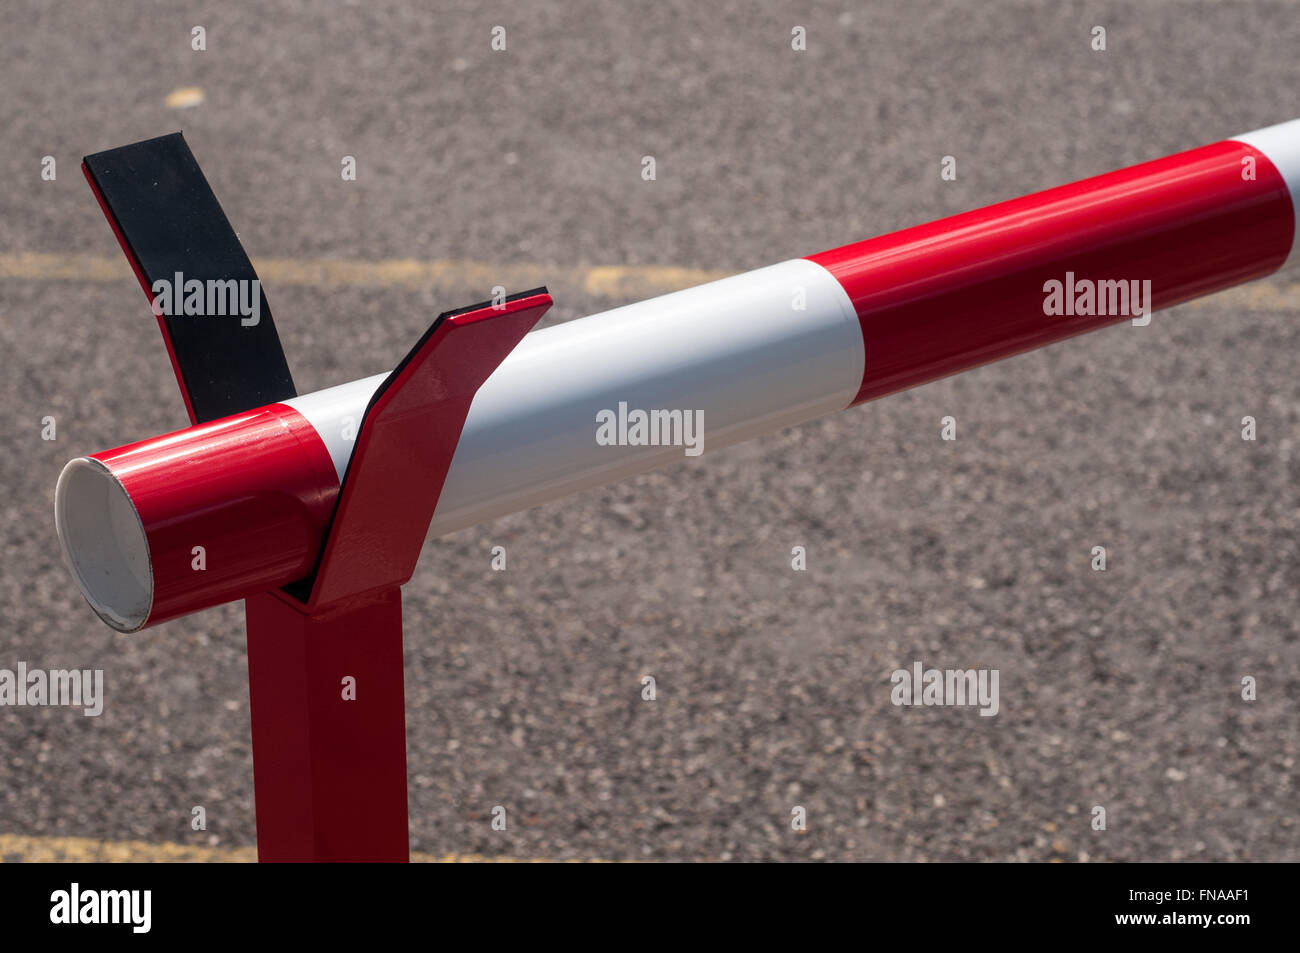 Barriers To Entry Stock Photos Amp Barriers To Entry Stock